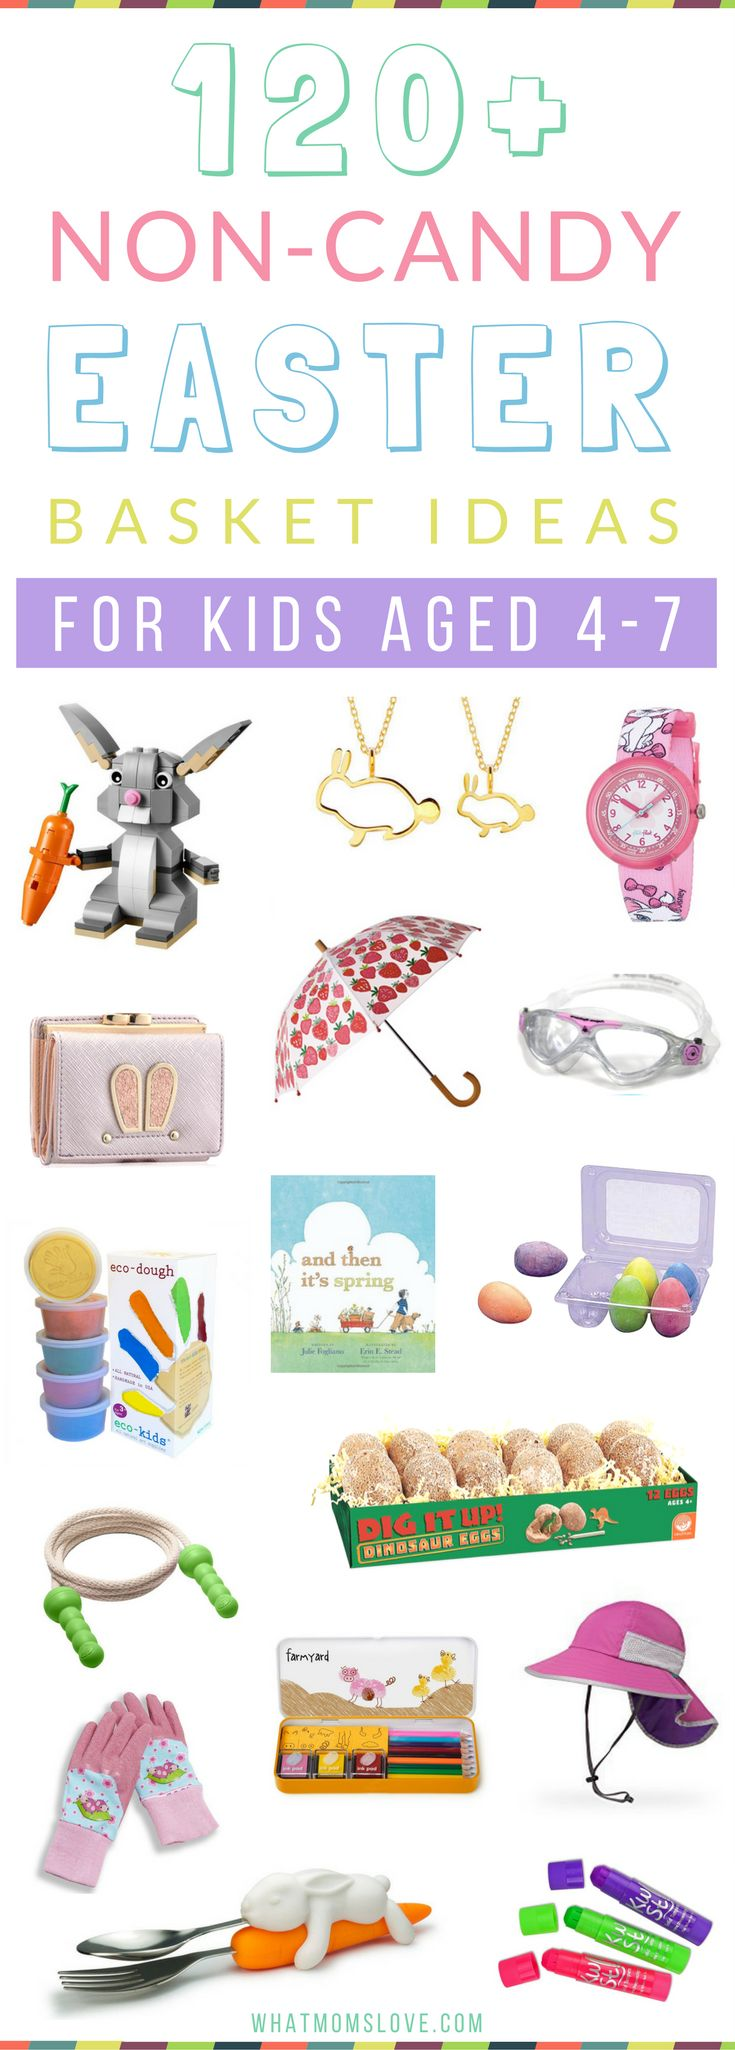 Best 25 unique easter basket ideas ideas on pinterest easter 250 non candy easter basket ideas for kids from babies to teens with no junky stuff negle Gallery